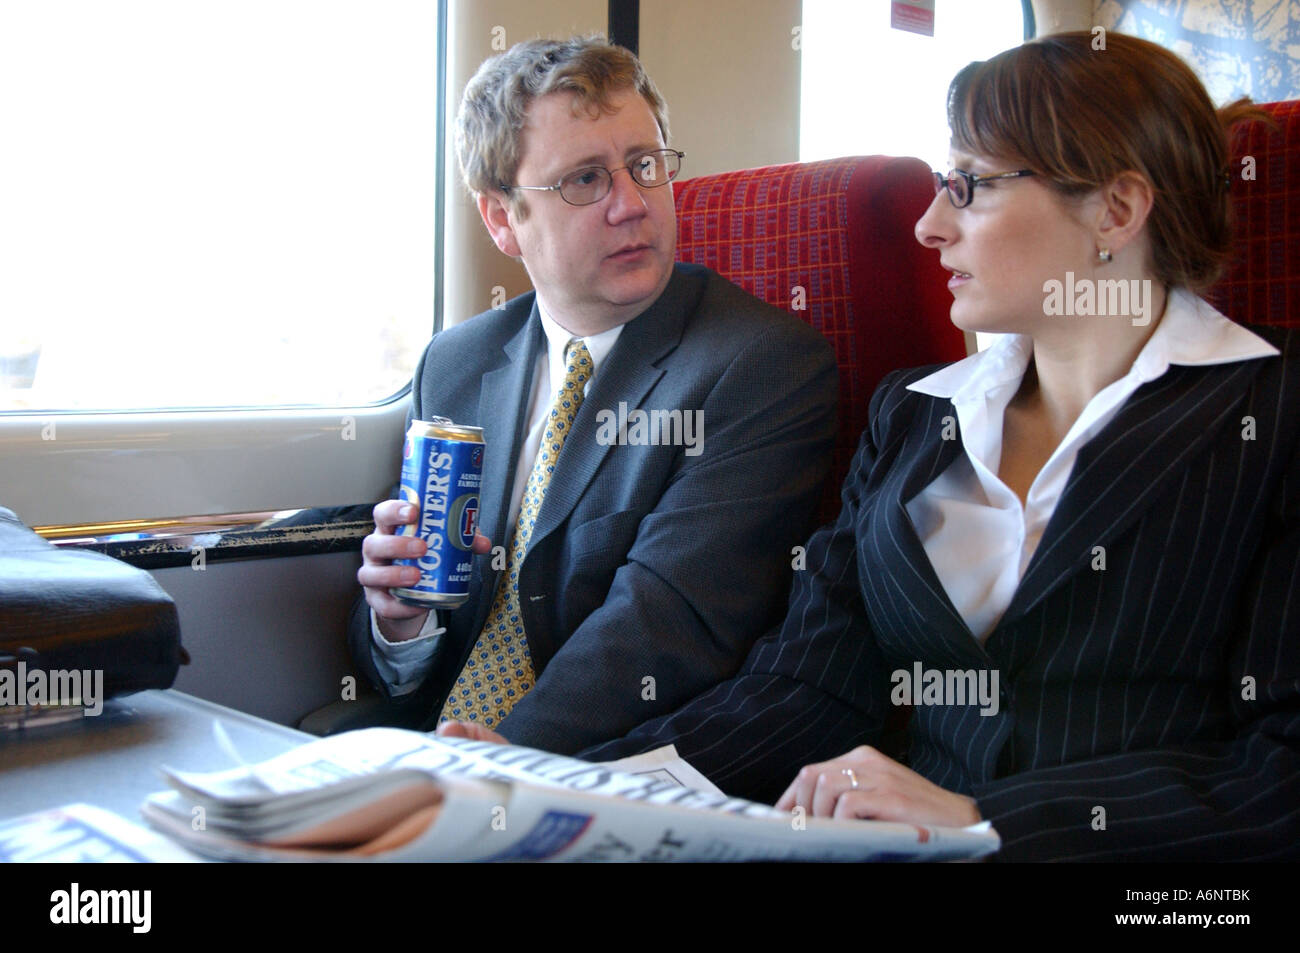 British Business Woman And Man Meeting On Train London Uk